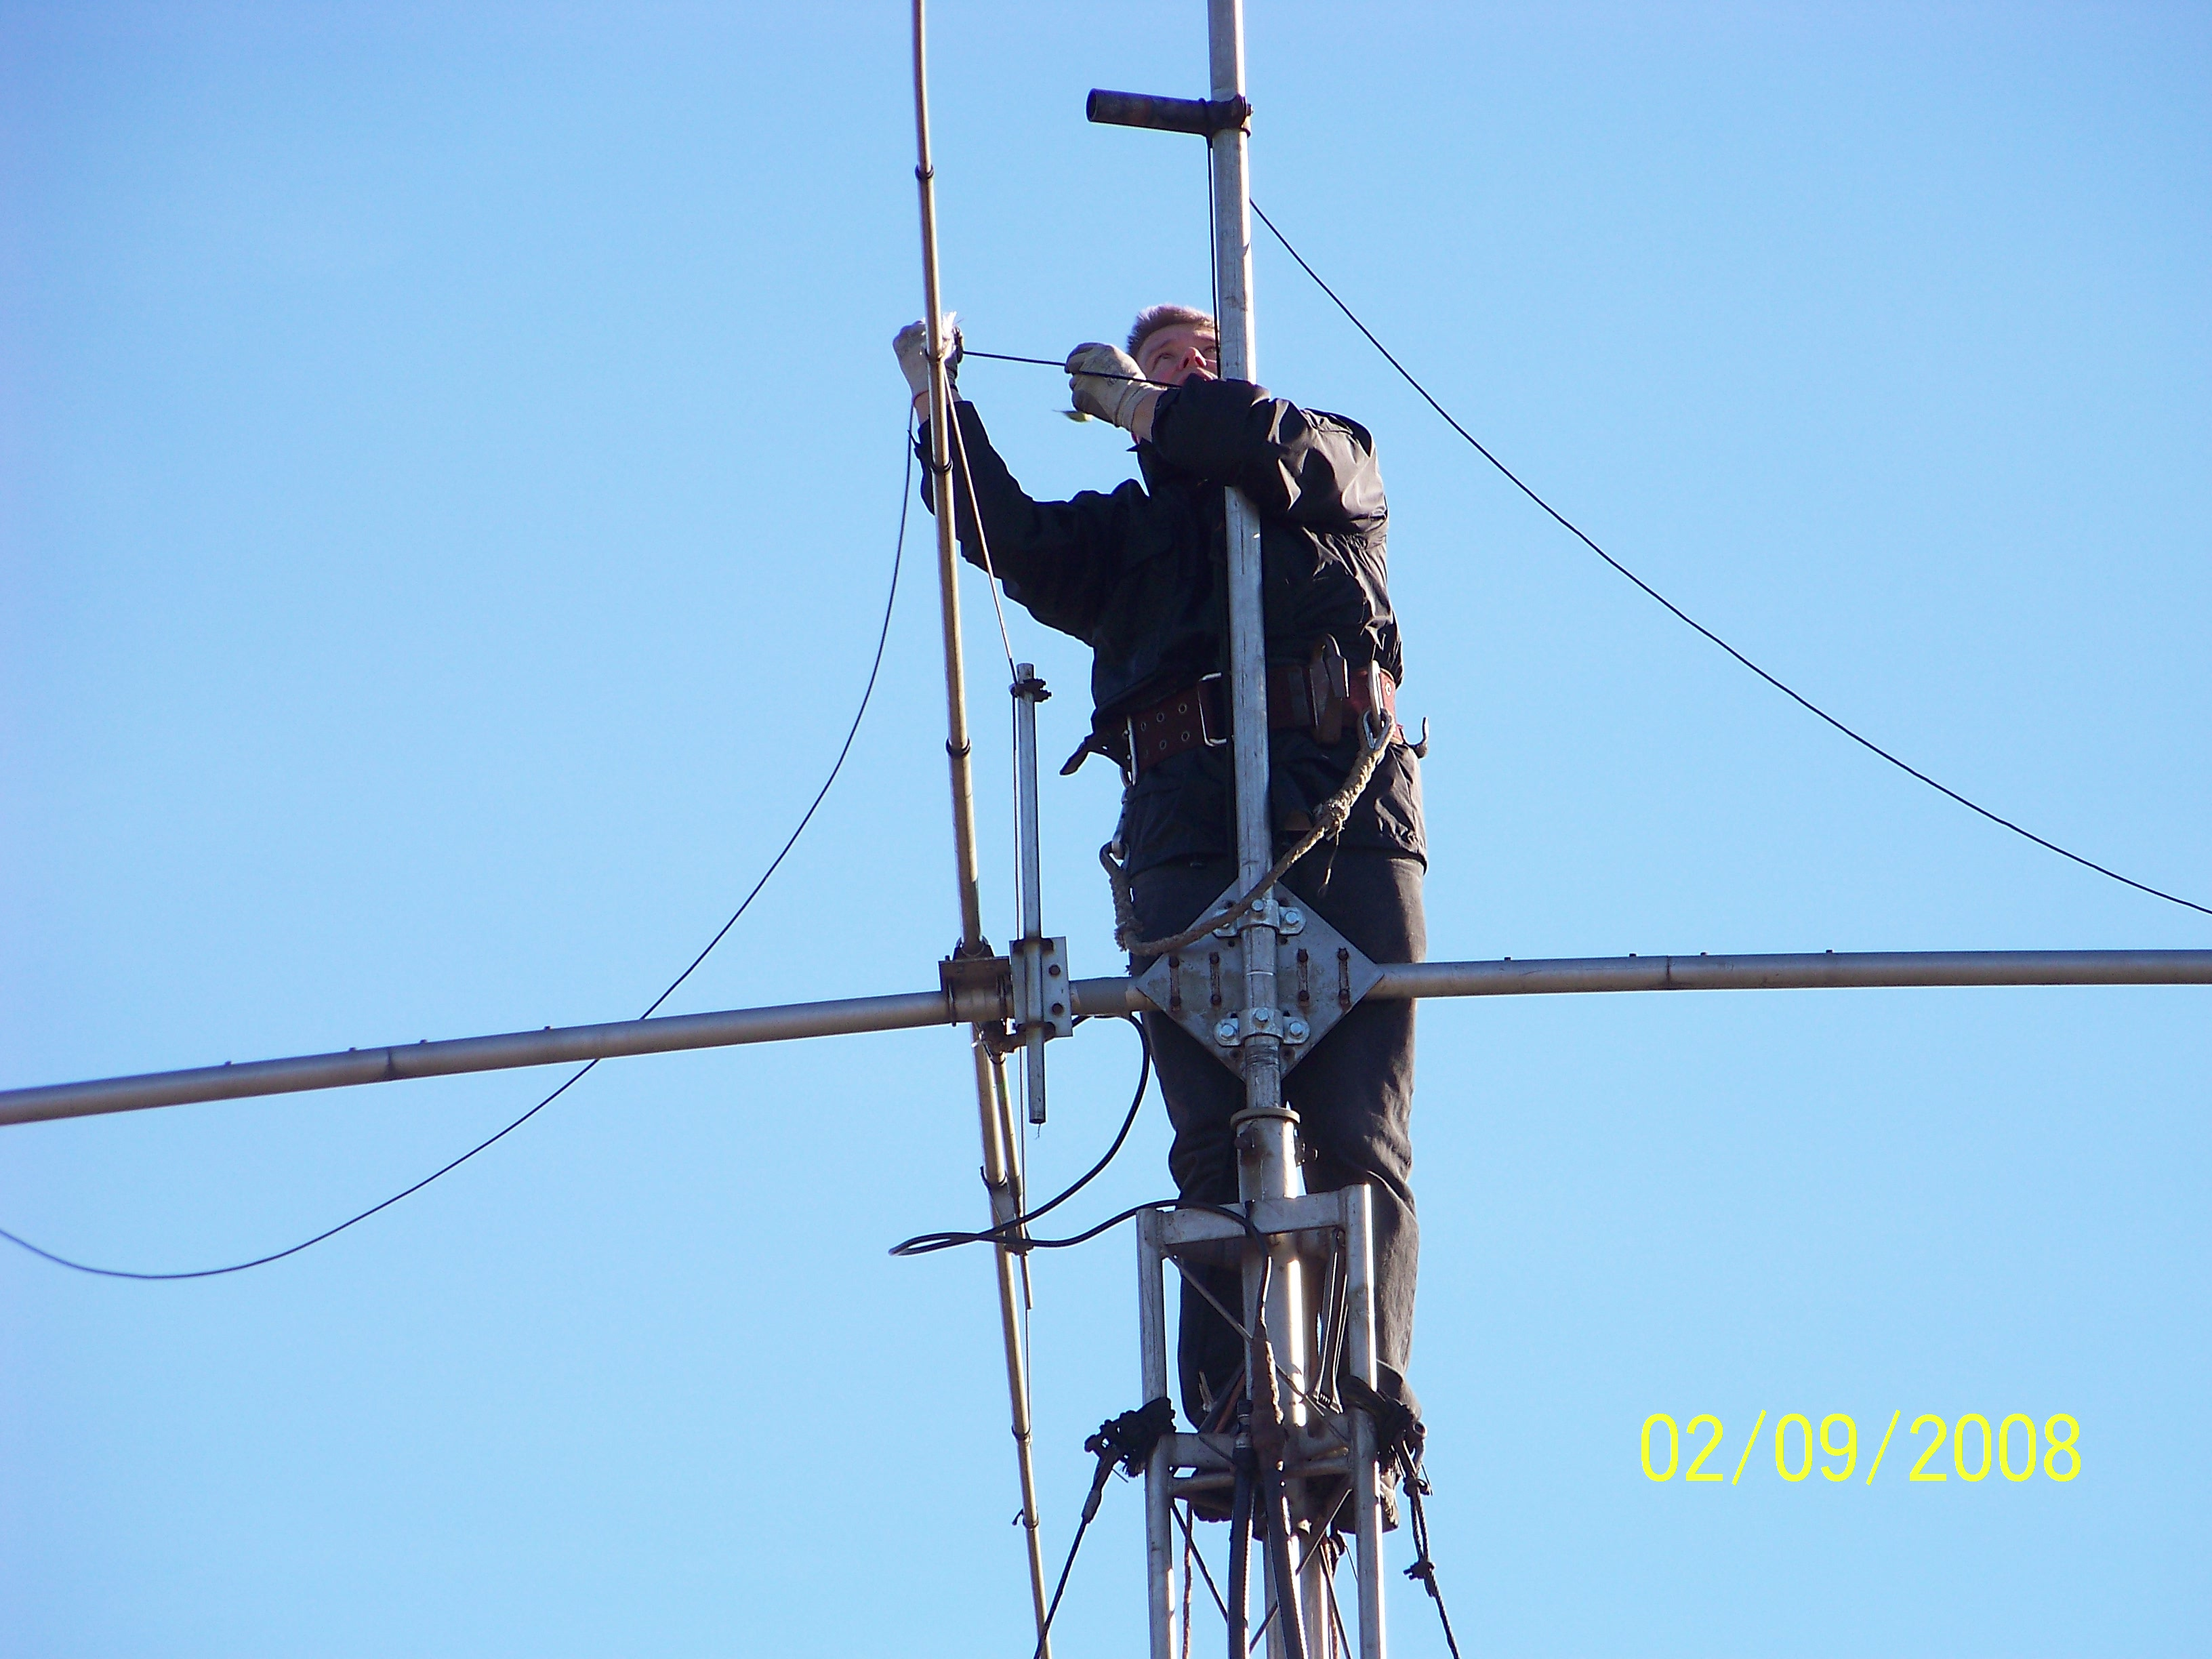 100_0087.jpg - Alex PA1AW trying to repair the 3 el. 20m yagi